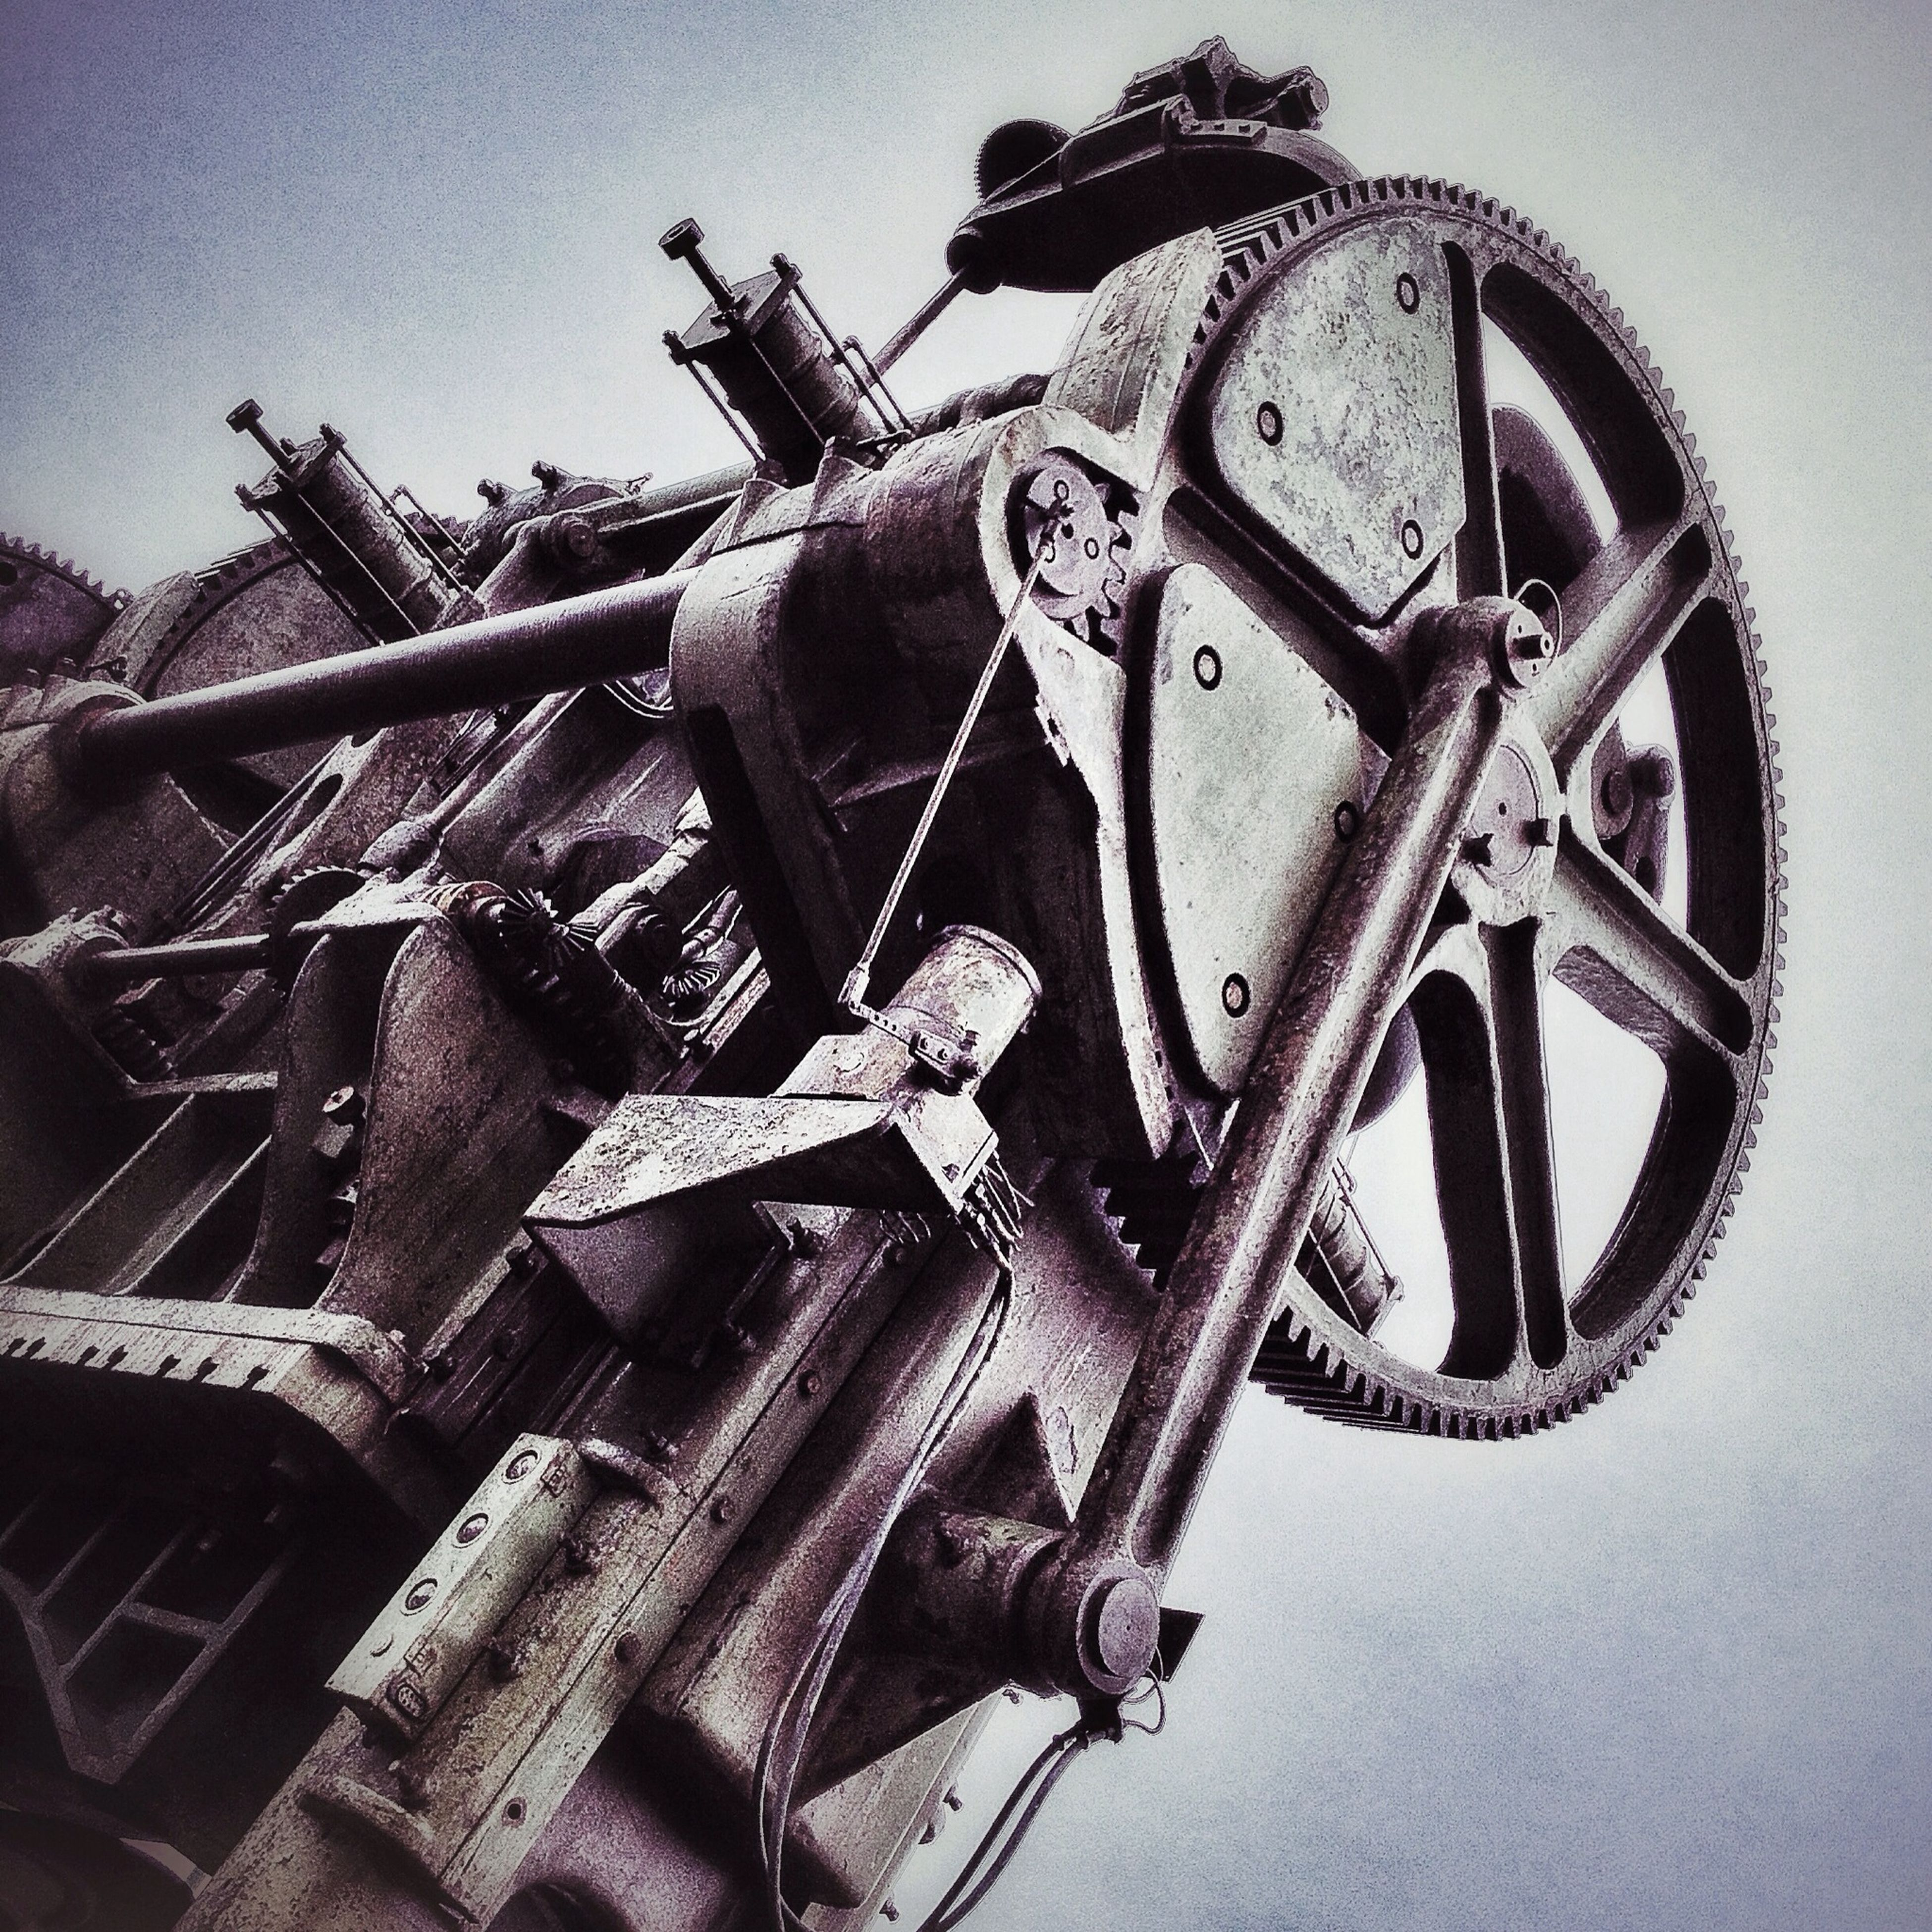 old, metal, obsolete, abandoned, rusty, deterioration, damaged, low angle view, run-down, close-up, sky, metallic, wheel, clear sky, outdoors, no people, machinery, transportation, day, weathered